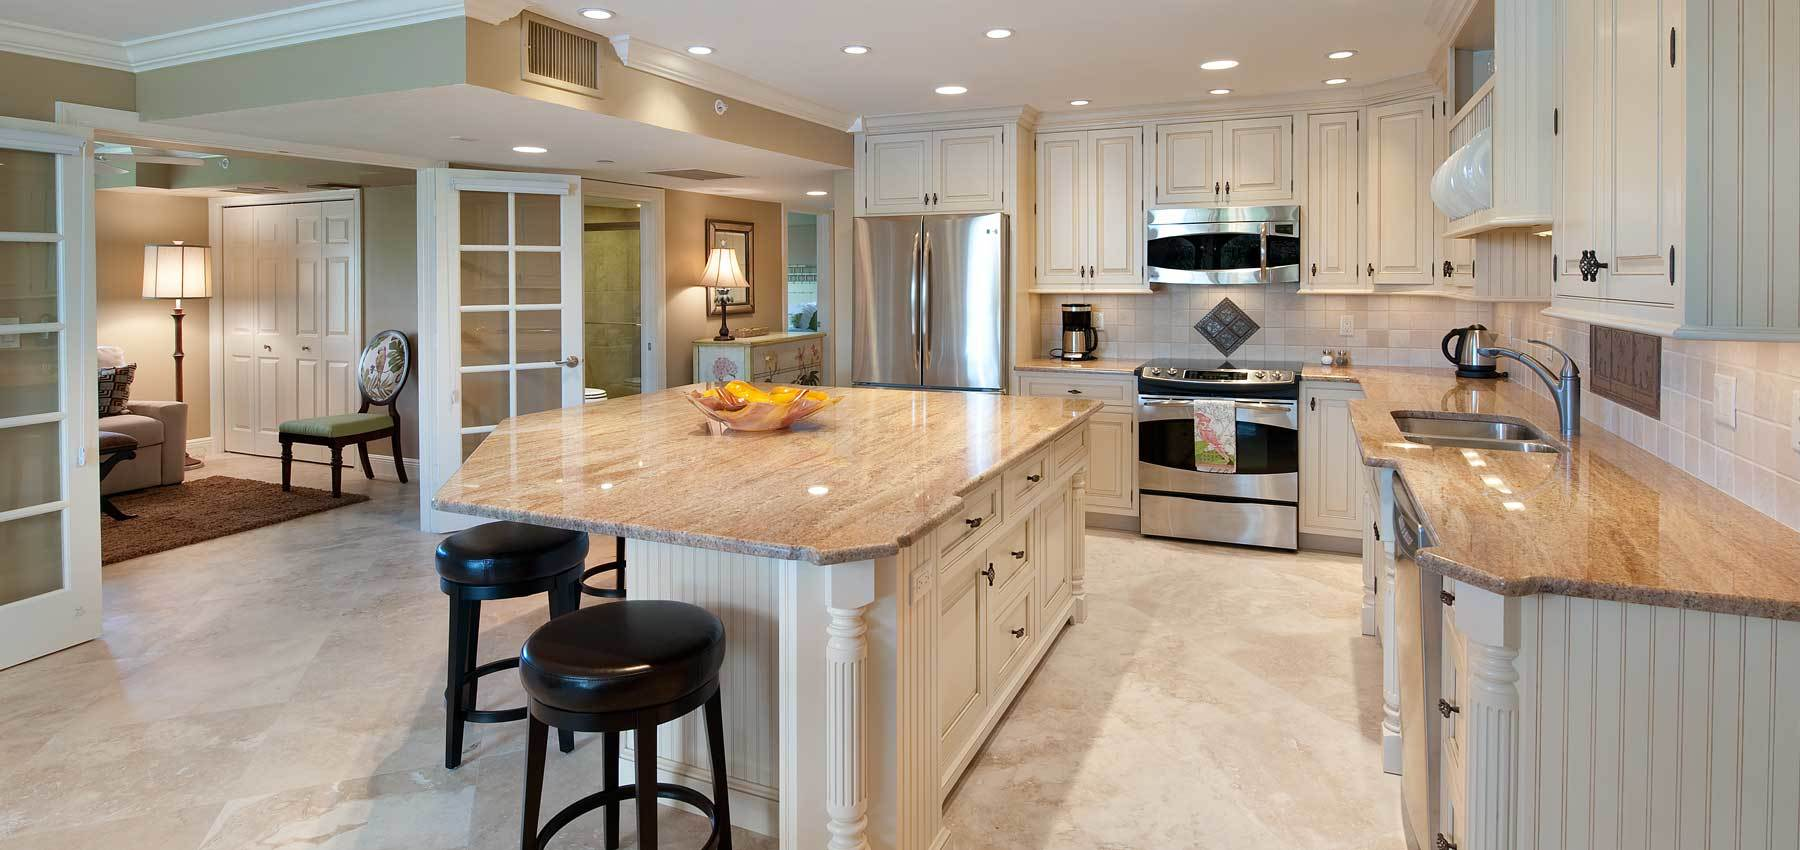 Kitchen Remodeling Companies Remodelling Prepossessing Kitchen Remodeling  Kgt Remodeling Review